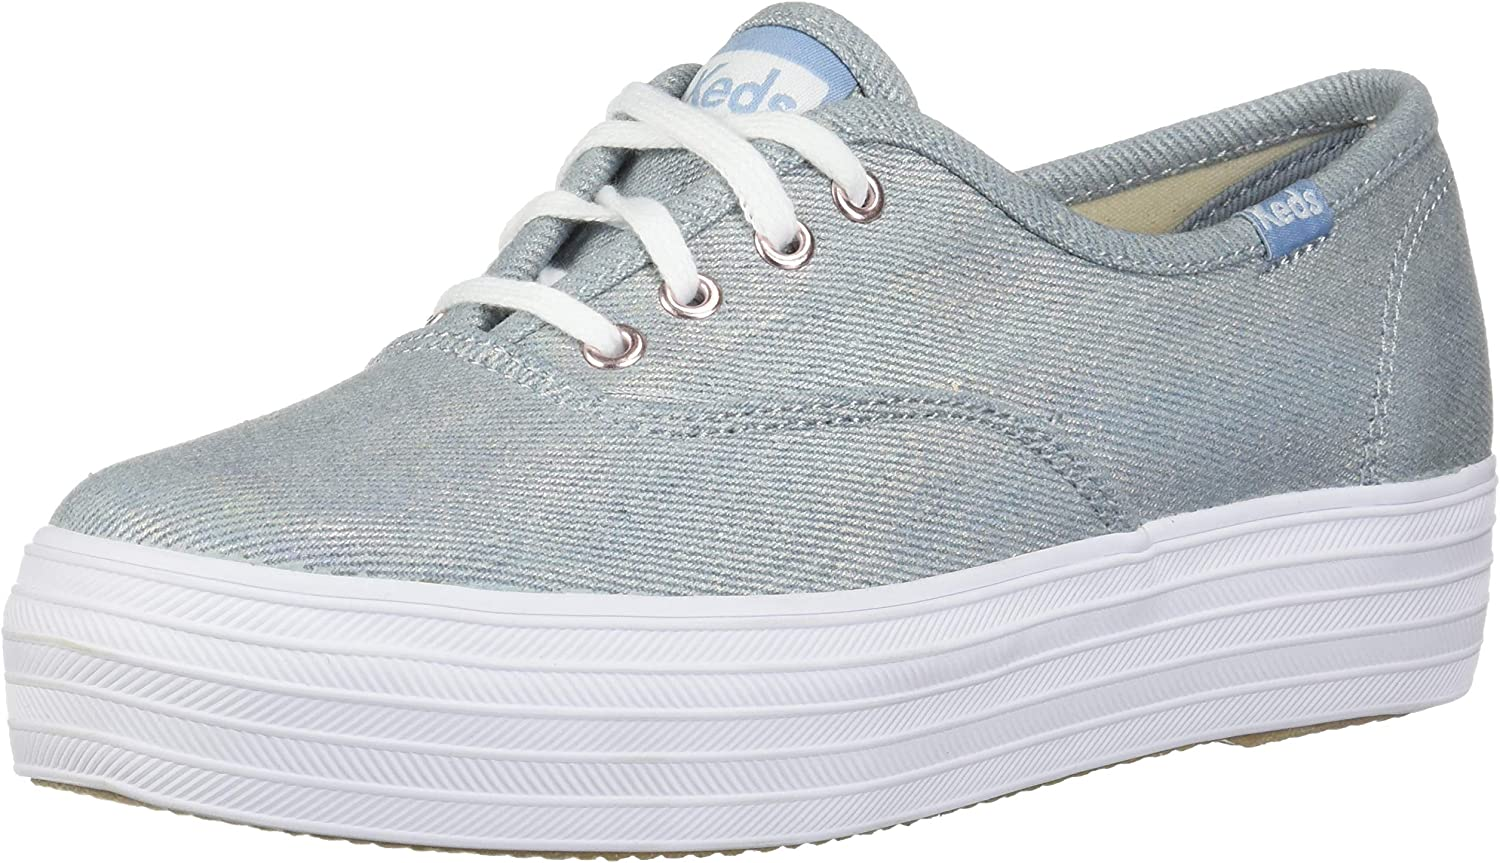 Pick A Size Keds Women/'s Champion Iridescent Denim Lace-Up Sneakers Light Grey